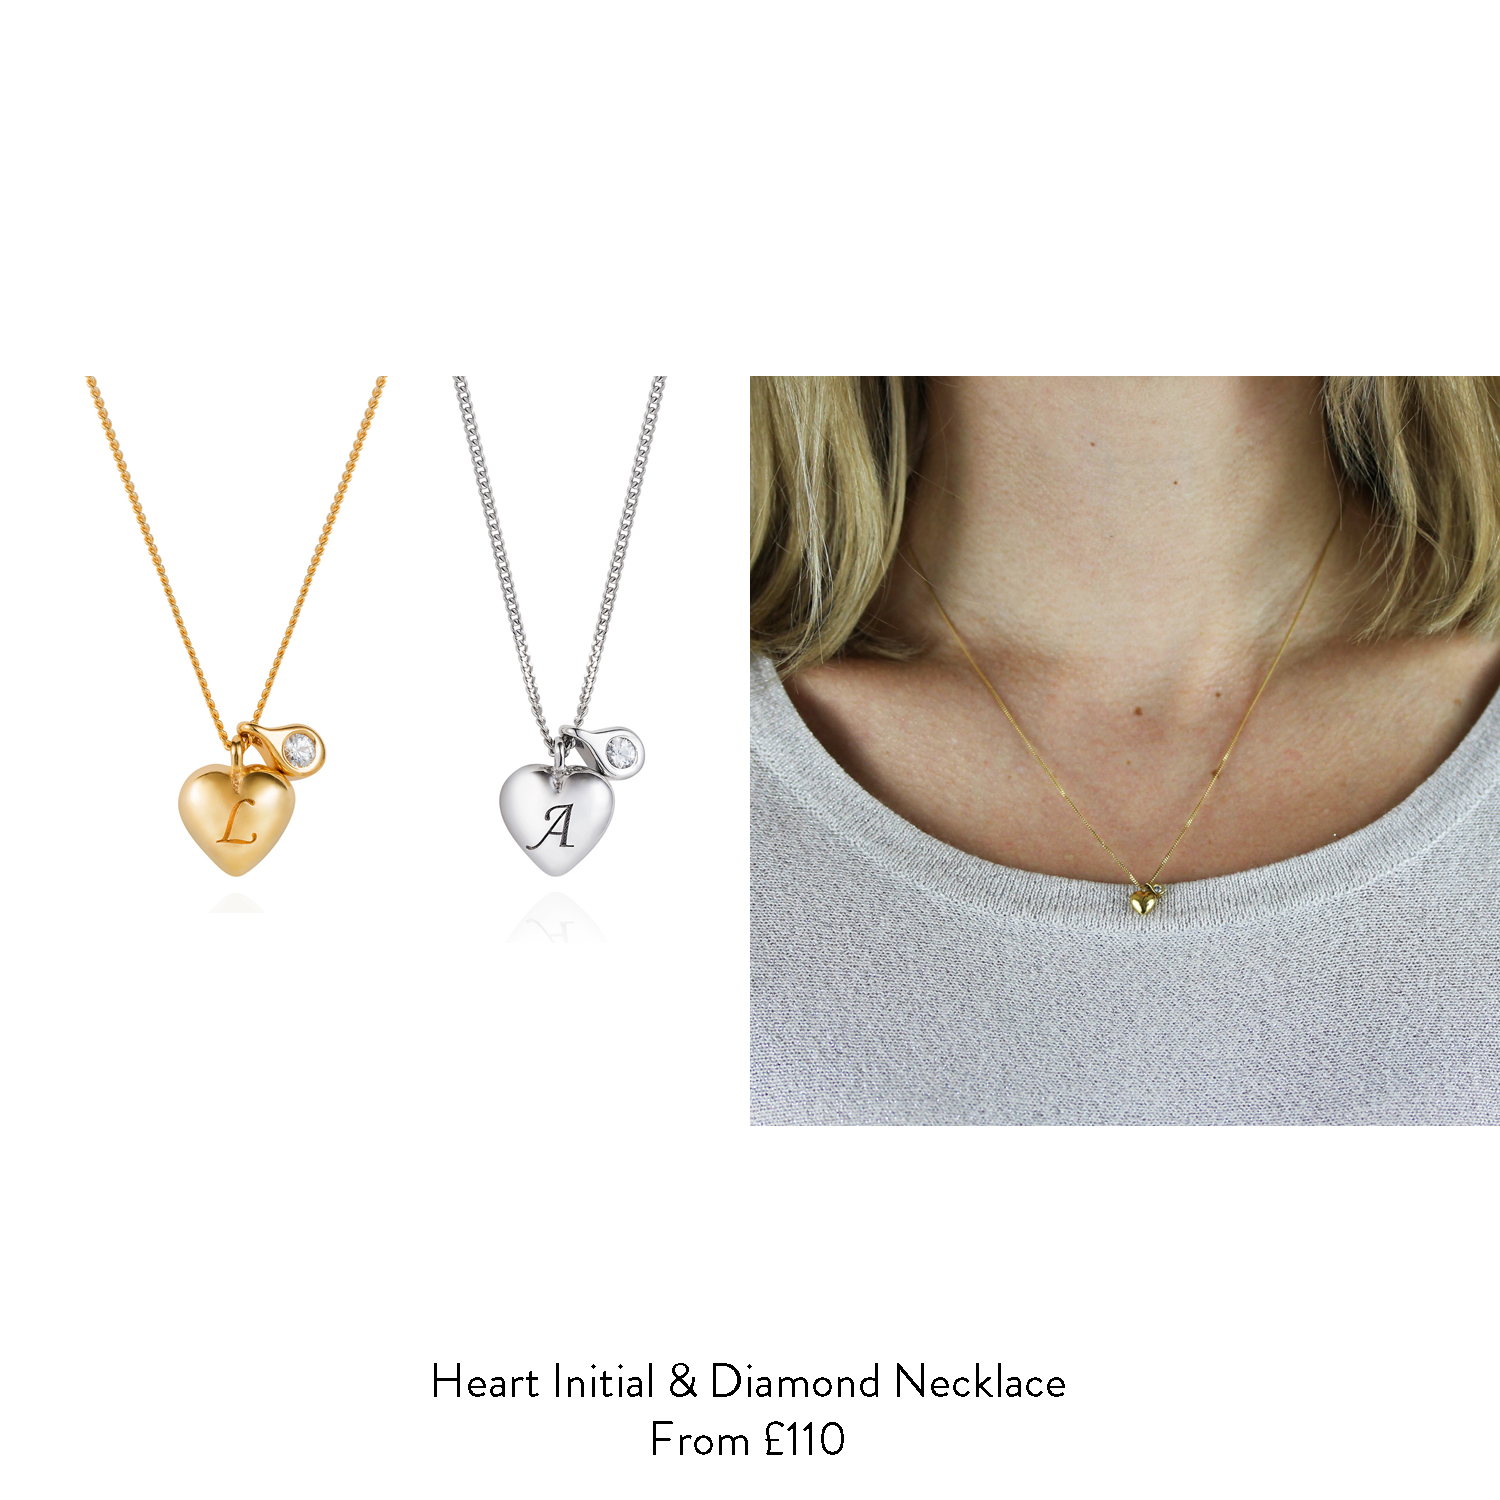 new mum gift ideas gold heart initial necklace